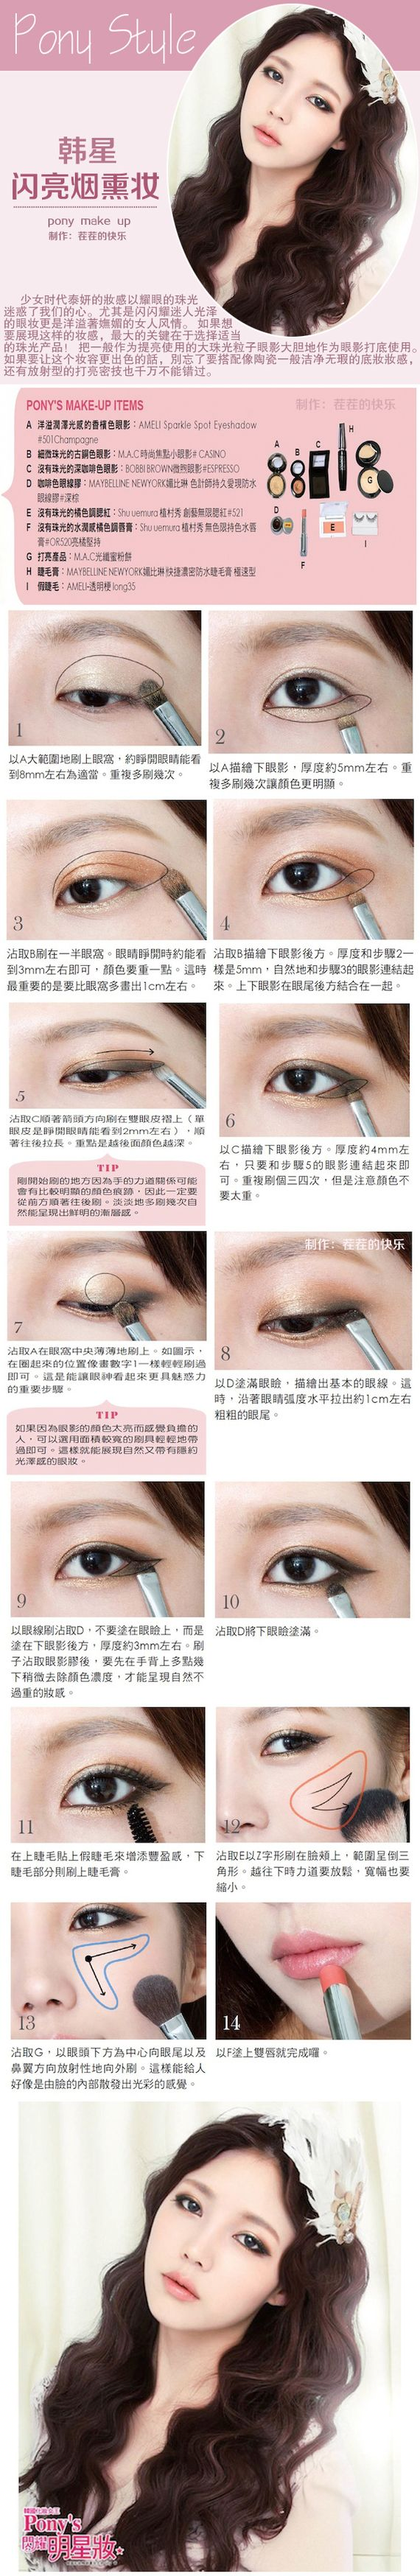 japanese/korean make up tutorial                                                                                                                                                                                 More